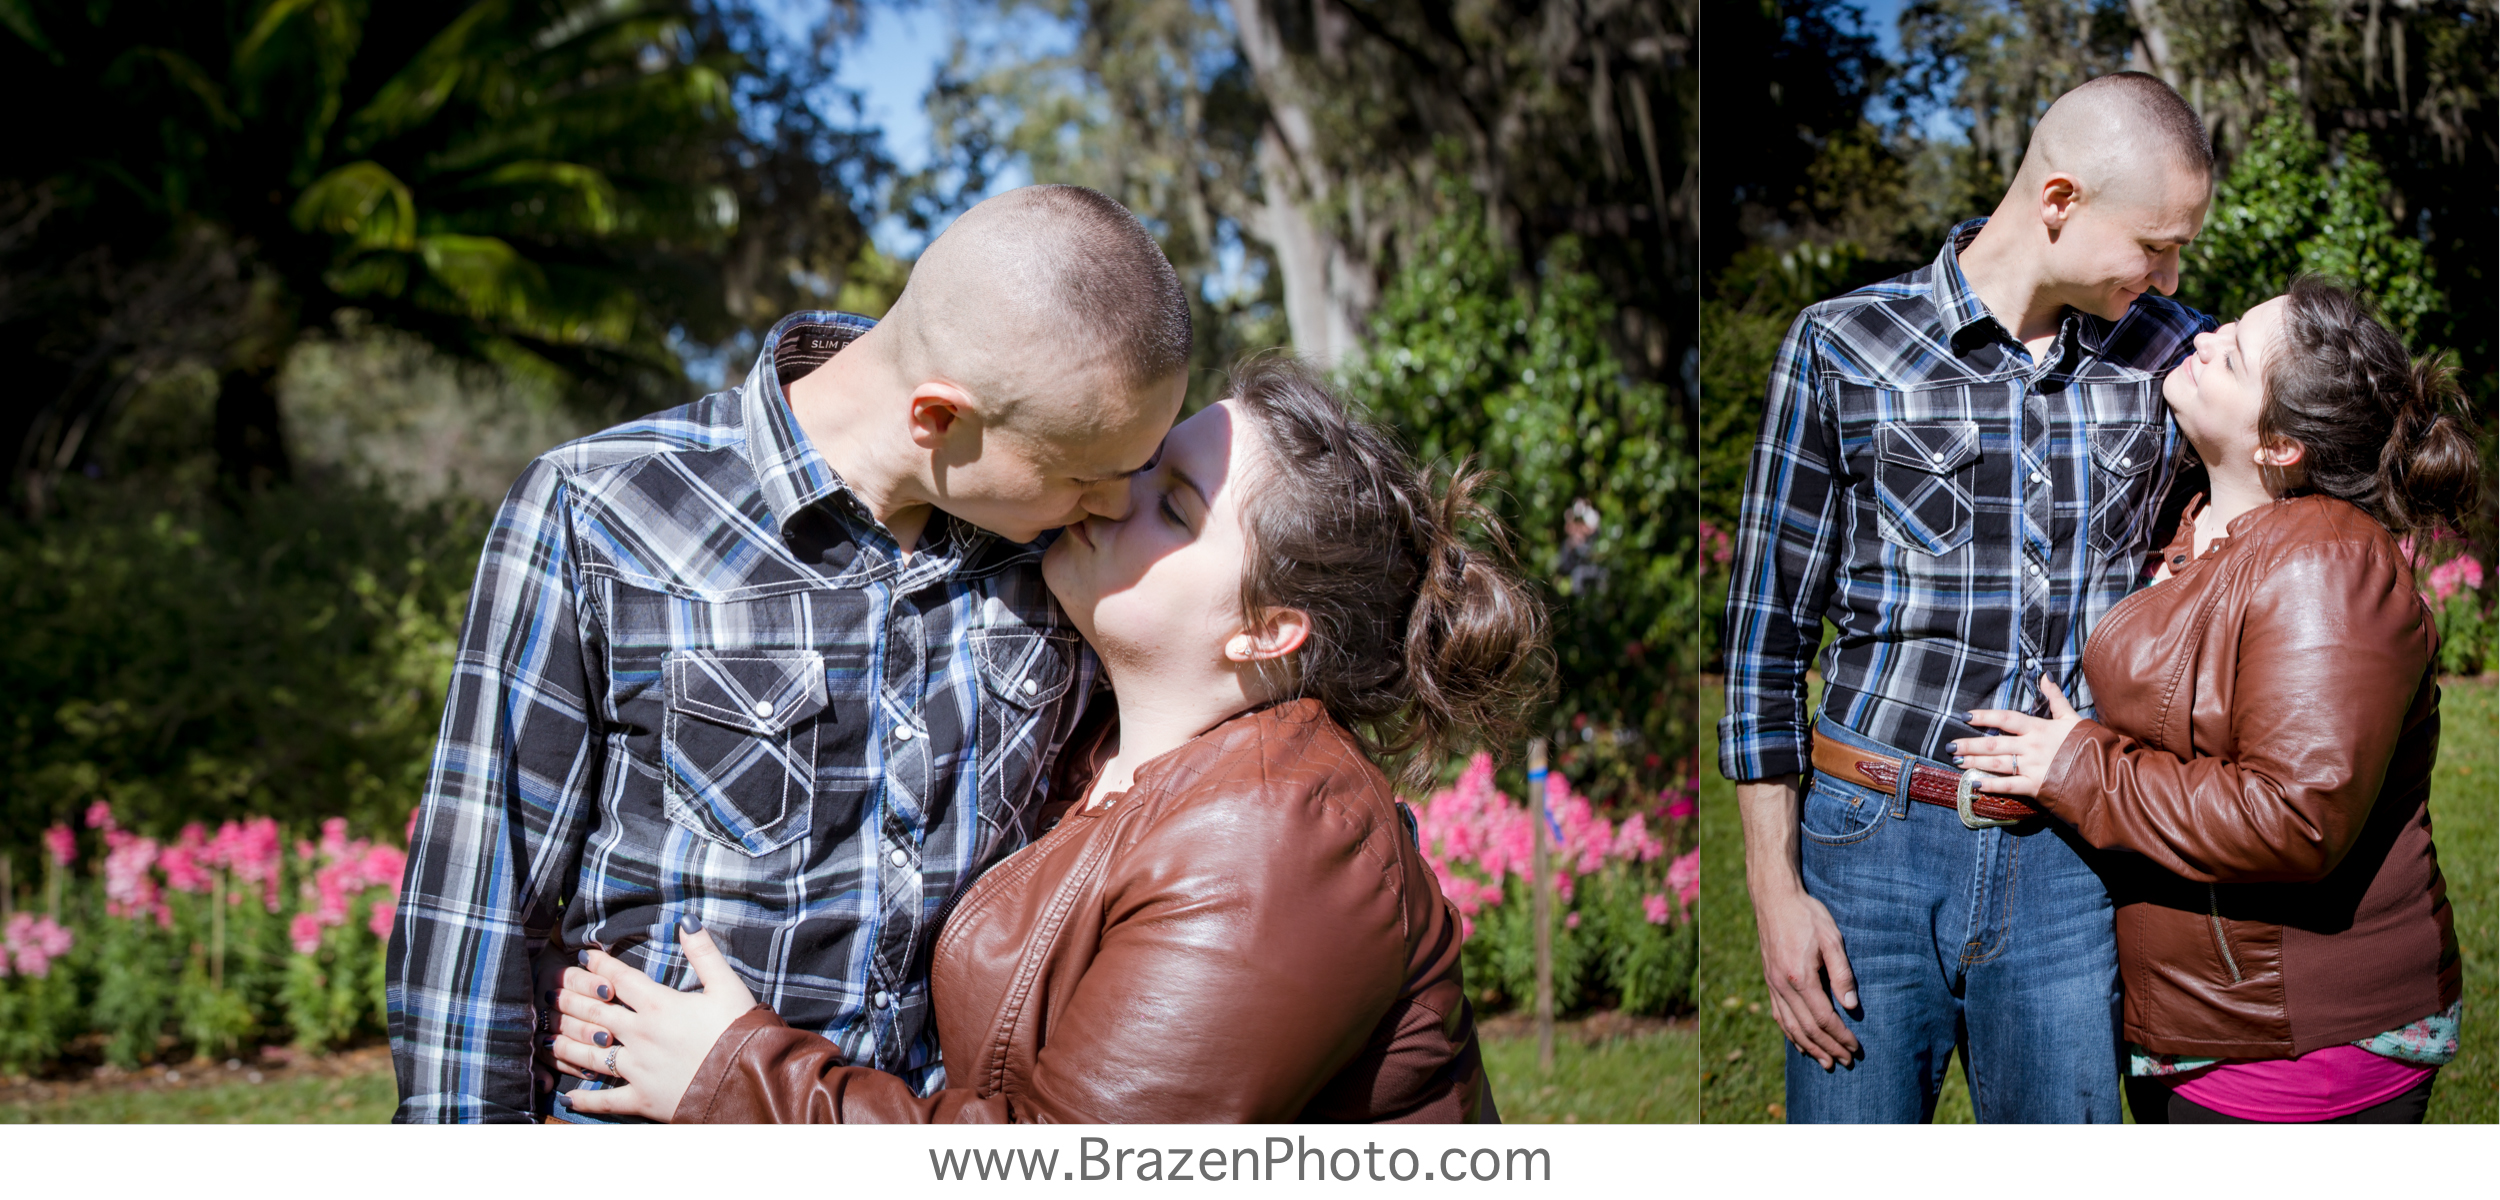 Orlando Wedding photographer-Jon and christiane-59.jpg